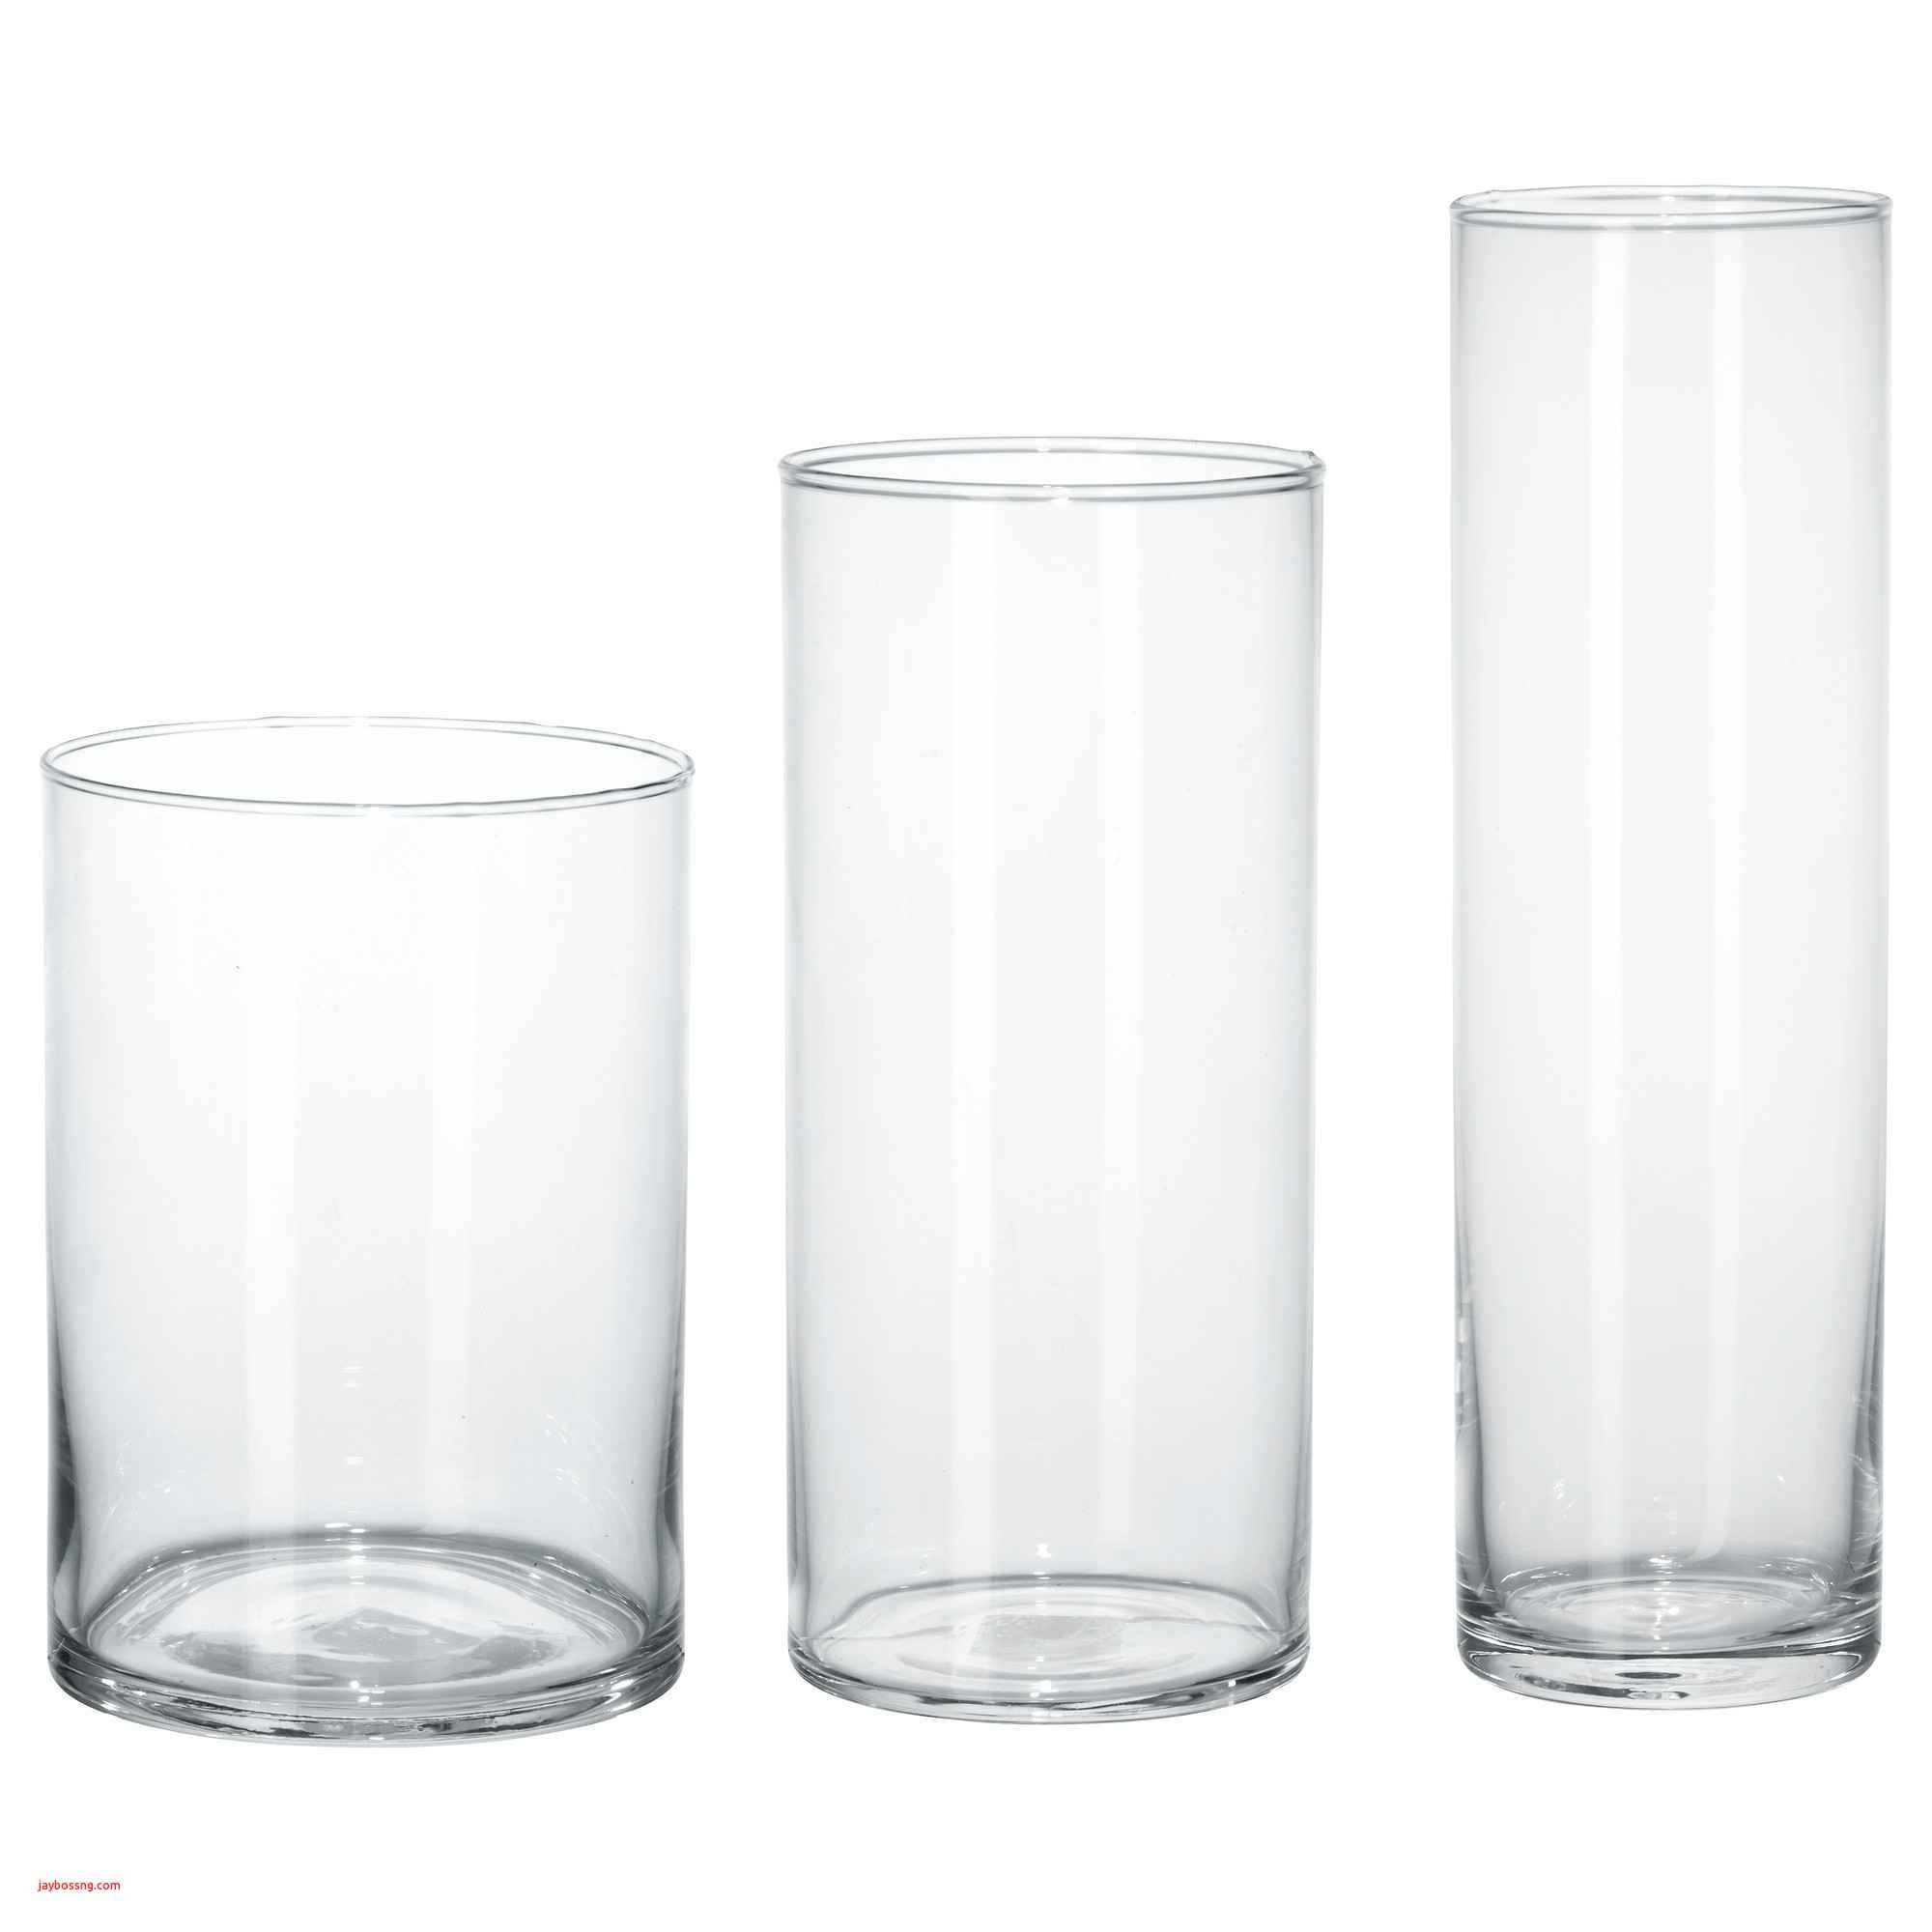 18 Stylish Tall Red Vases Cheap 2021 free download tall red vases cheap of brown glass vase fresh ikea white table created pe s5h vases ikea throughout brown glass vase fresh ikea white table created pe s5h vases ikea vase i 0d bladet